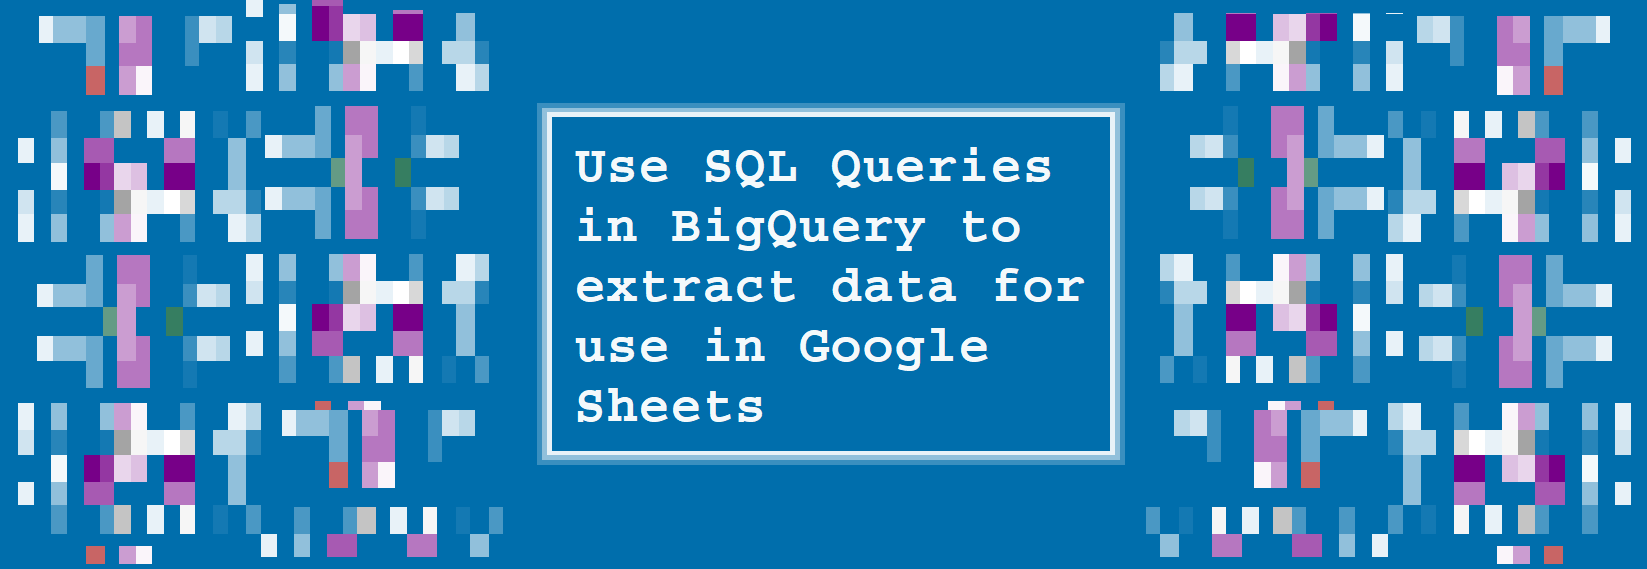 Use SQL Queries in BigQuery to extract data you can use in Google Sheets